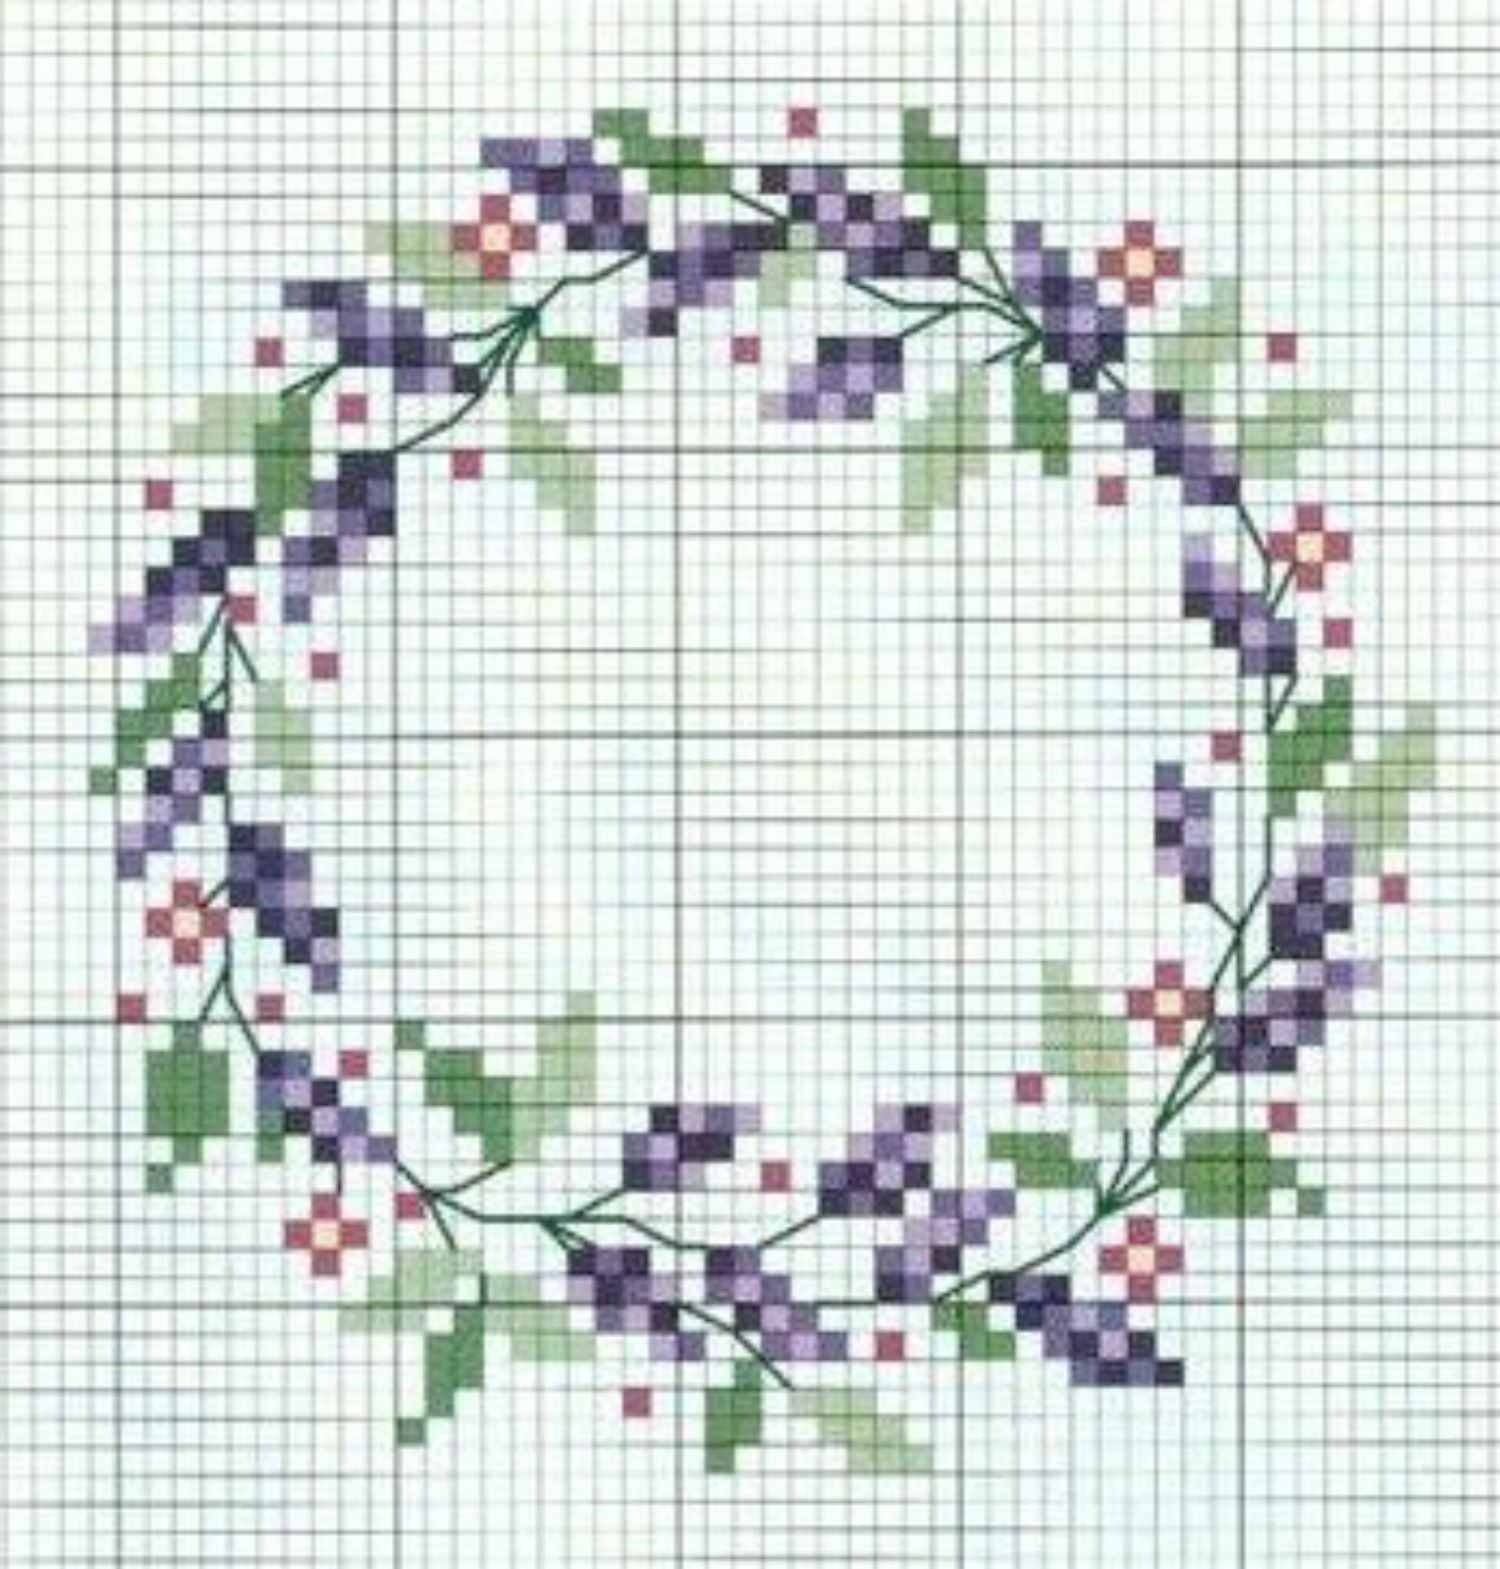 15 Floral Wreath Cross-Stitch Patterns - Free Printable Cross Stitch Patterns Flowers